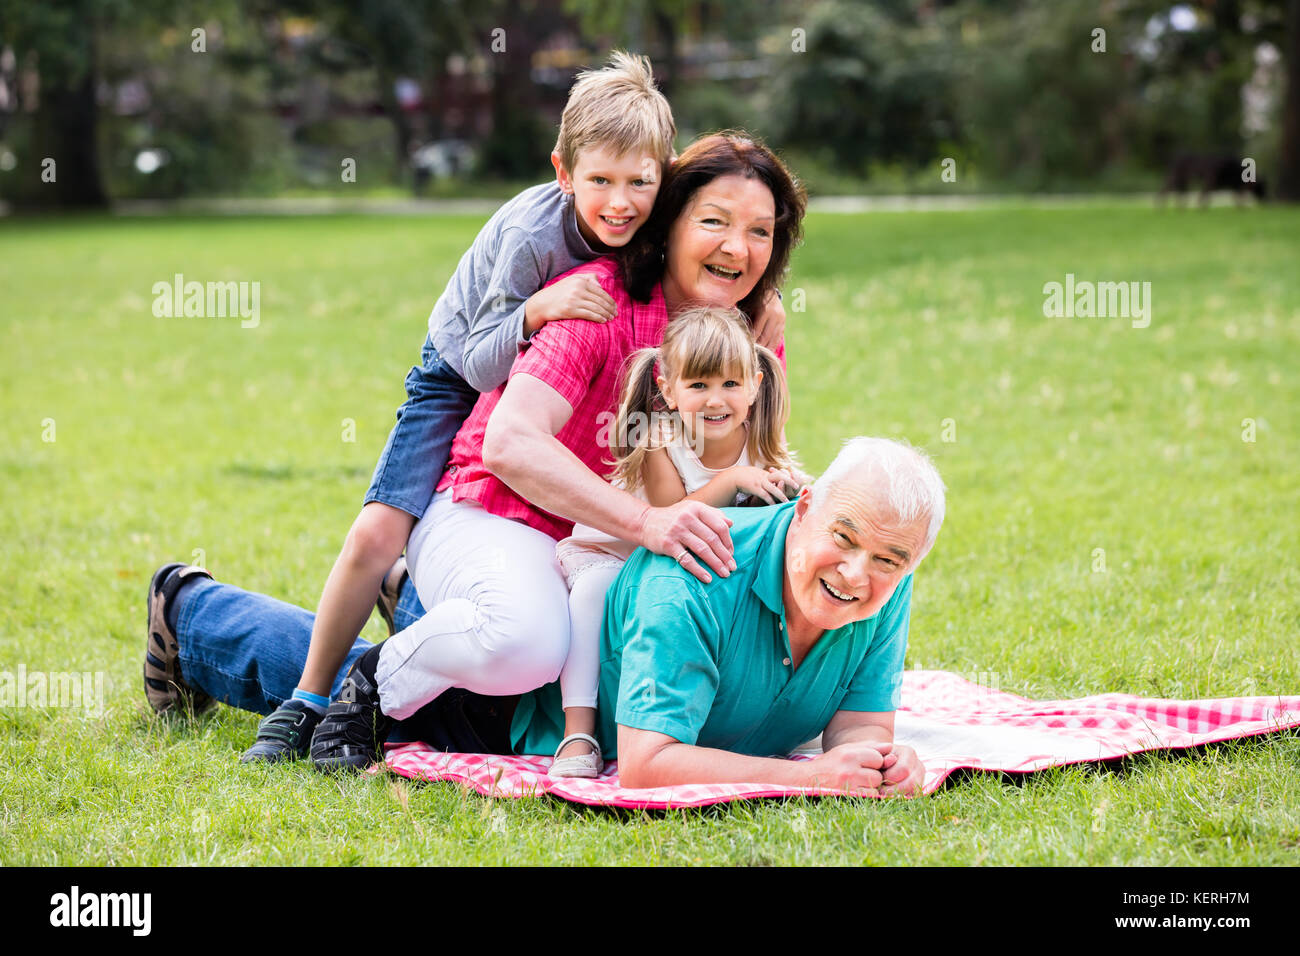 Happy Family having fun lying on grass in park Photo Stock